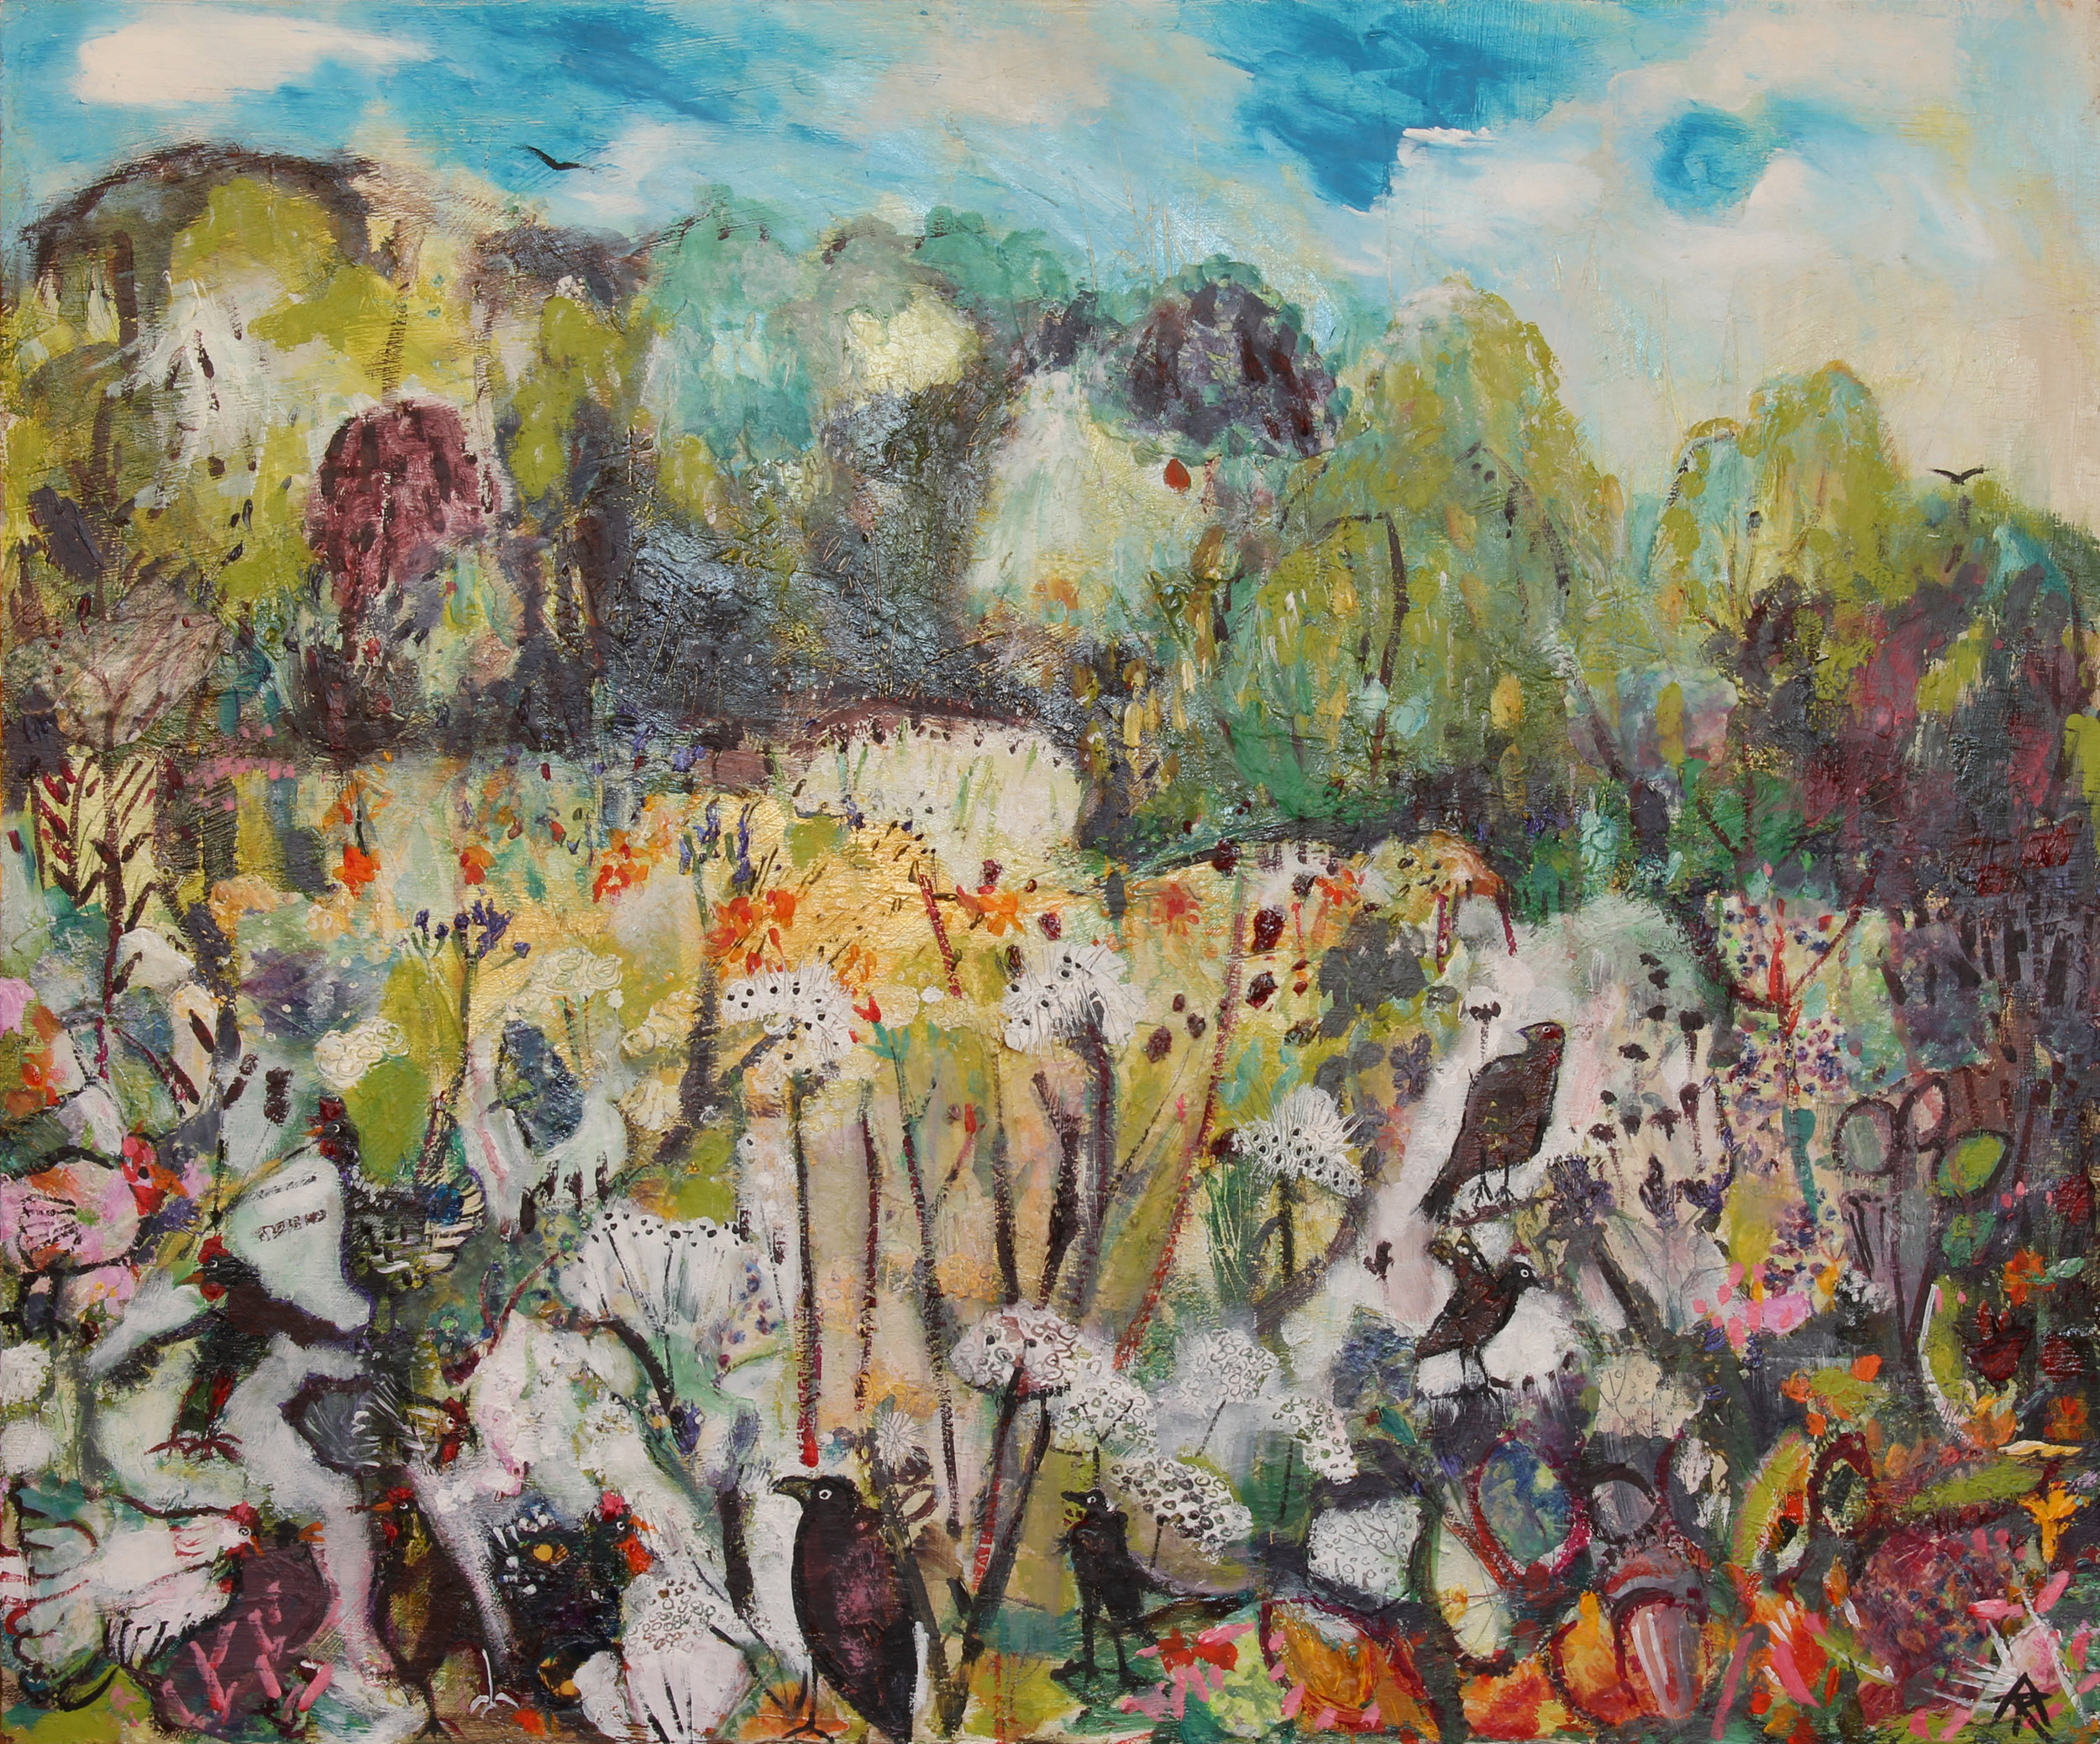 Busy in the Water Meadow, mixed on board, 55 x 65 cm